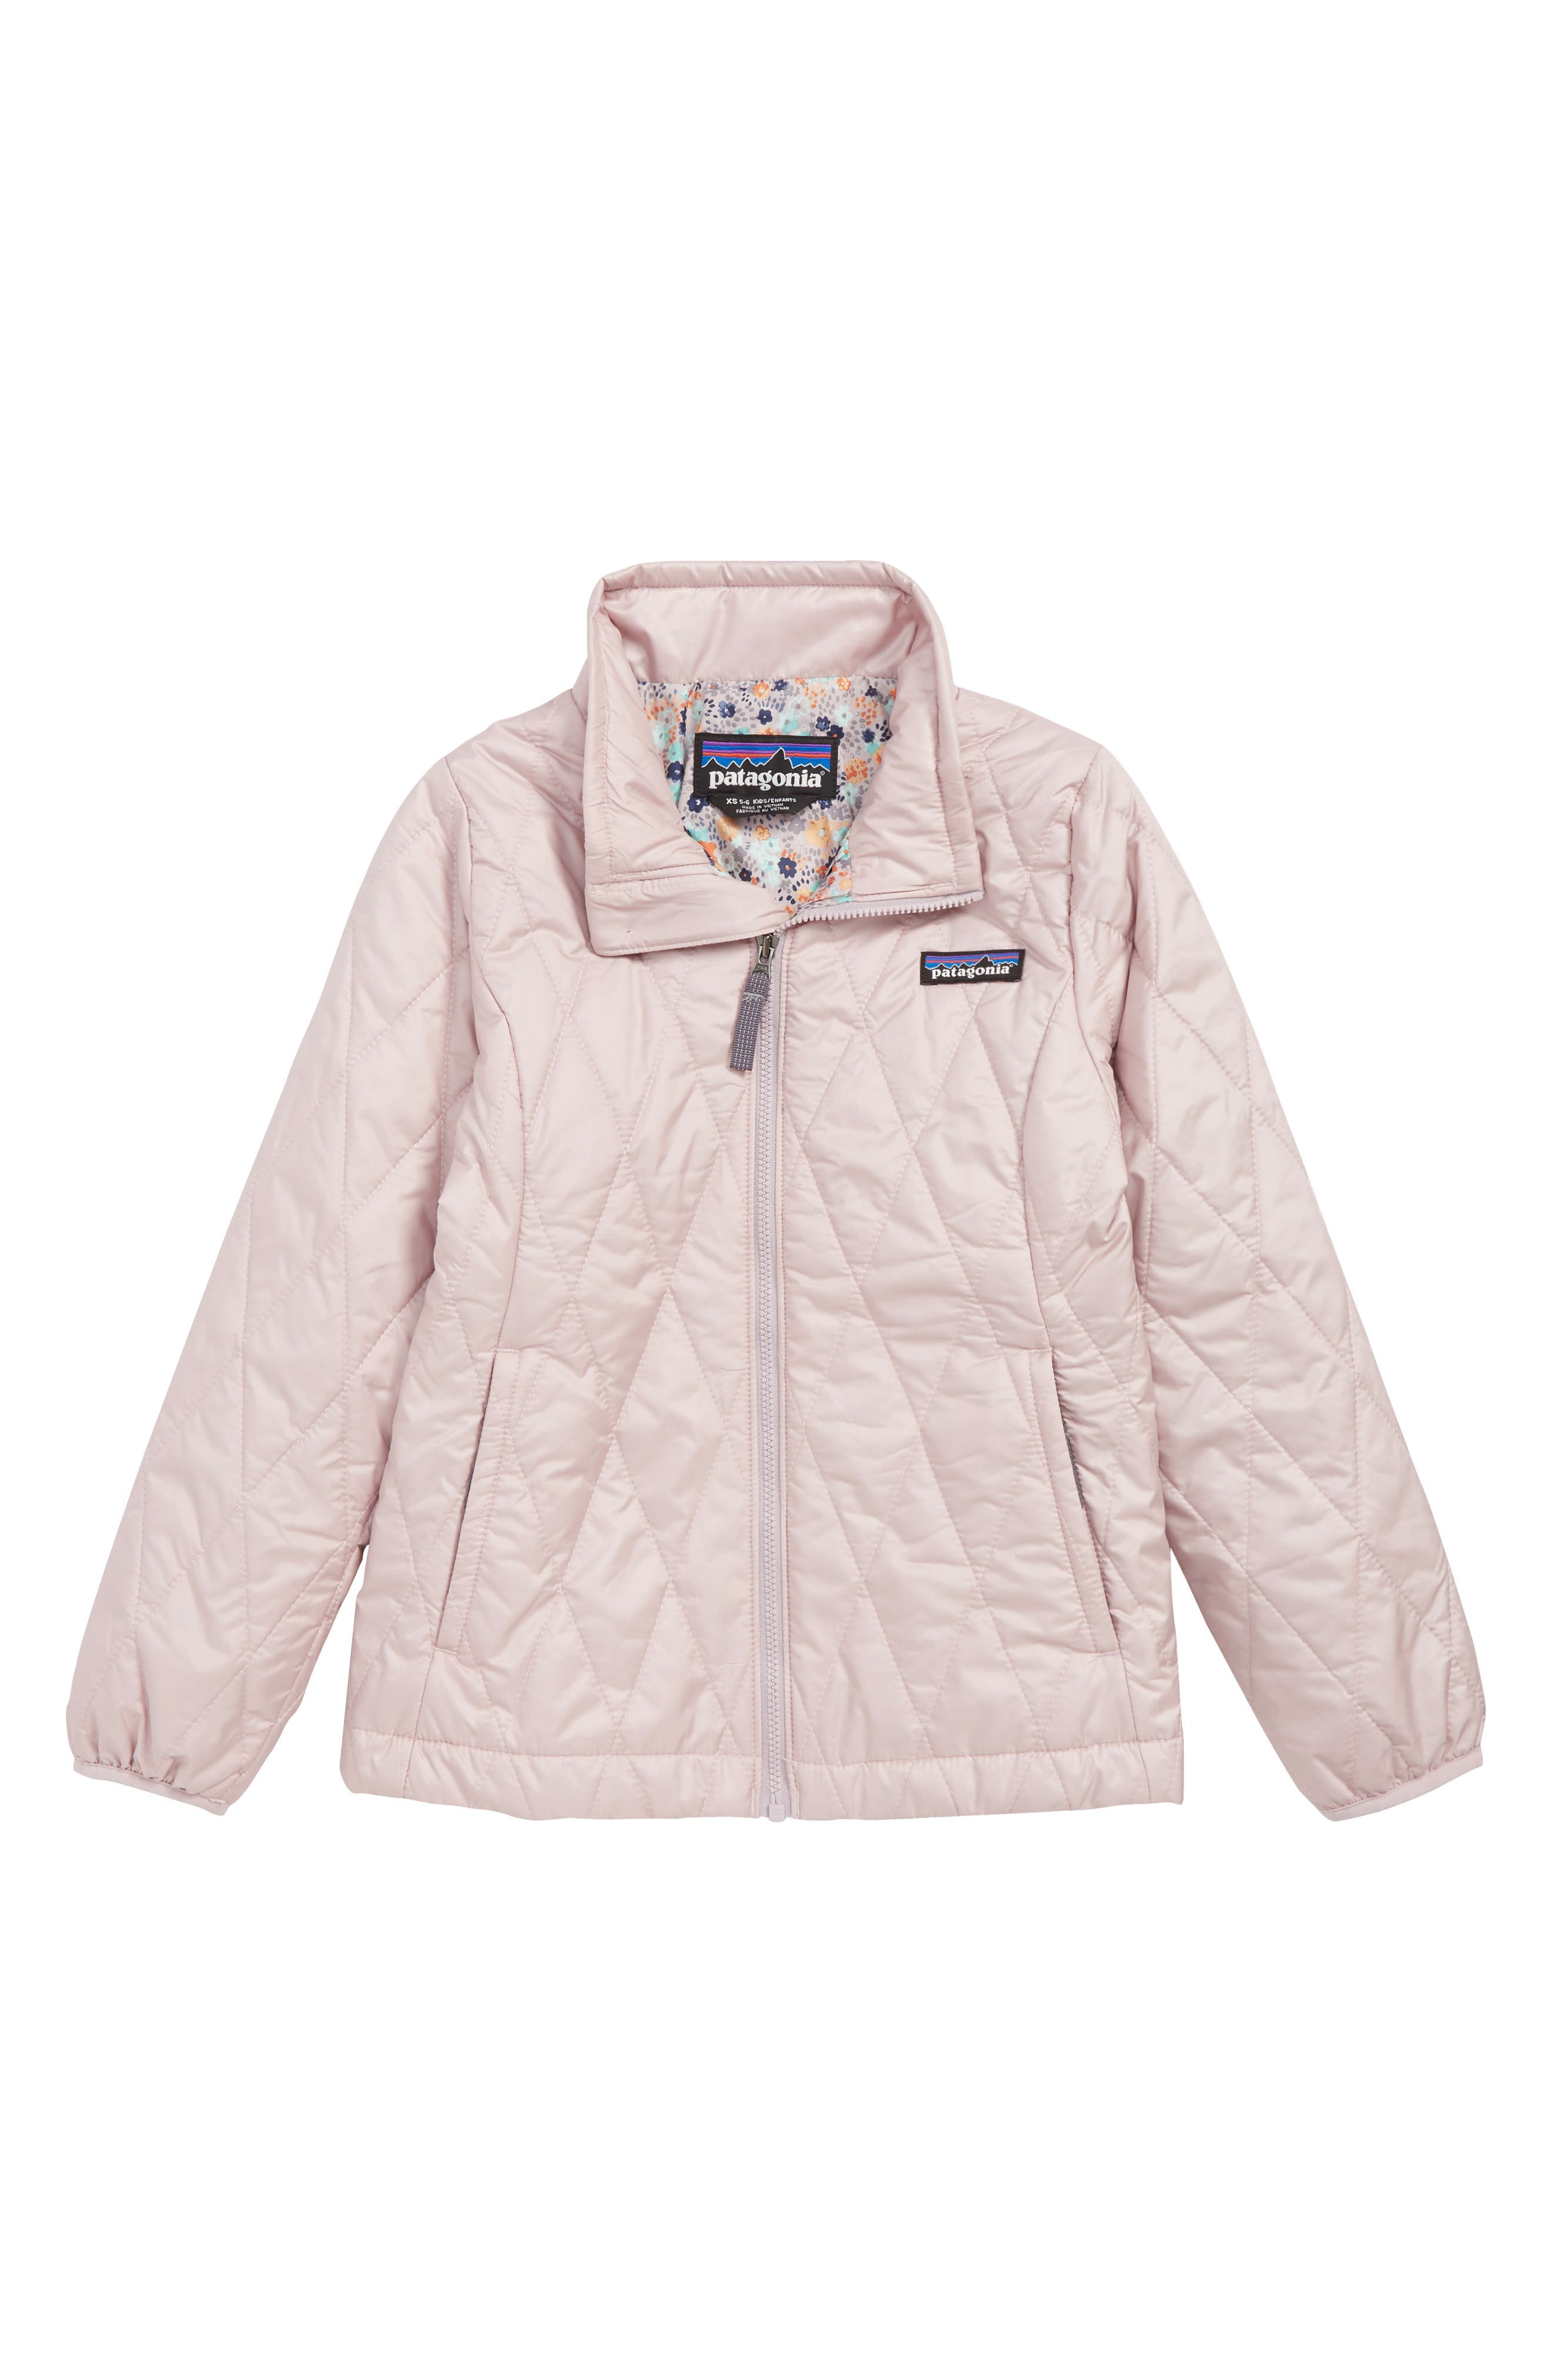 Nano Puff<sup>®</sup> Quilted Water Resistant Jacket,                             Main thumbnail 1, color,                             GLAZE PURPLE